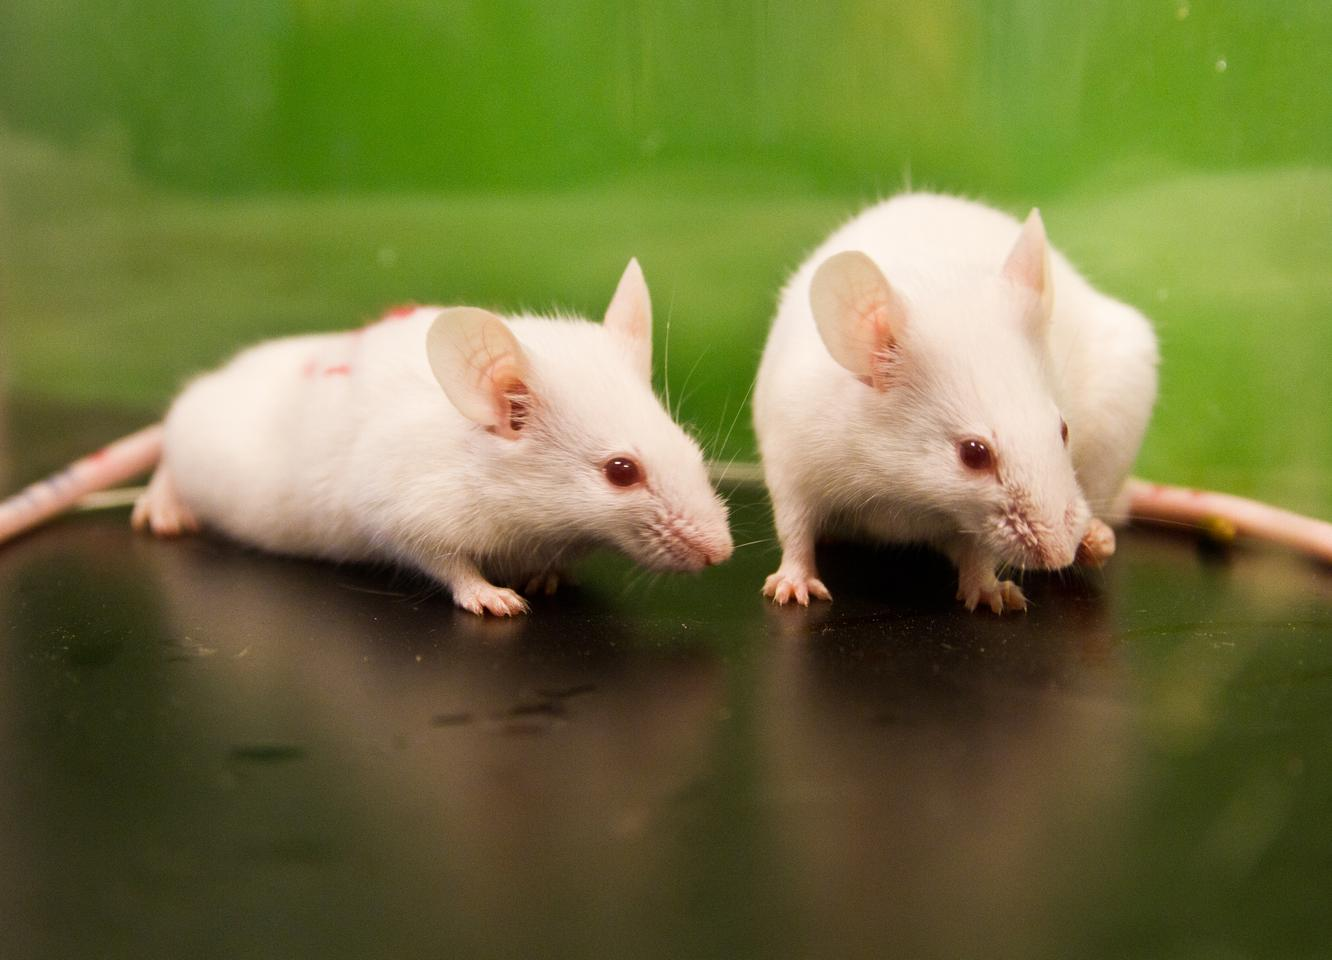 The technique has already been successfully tested on mice